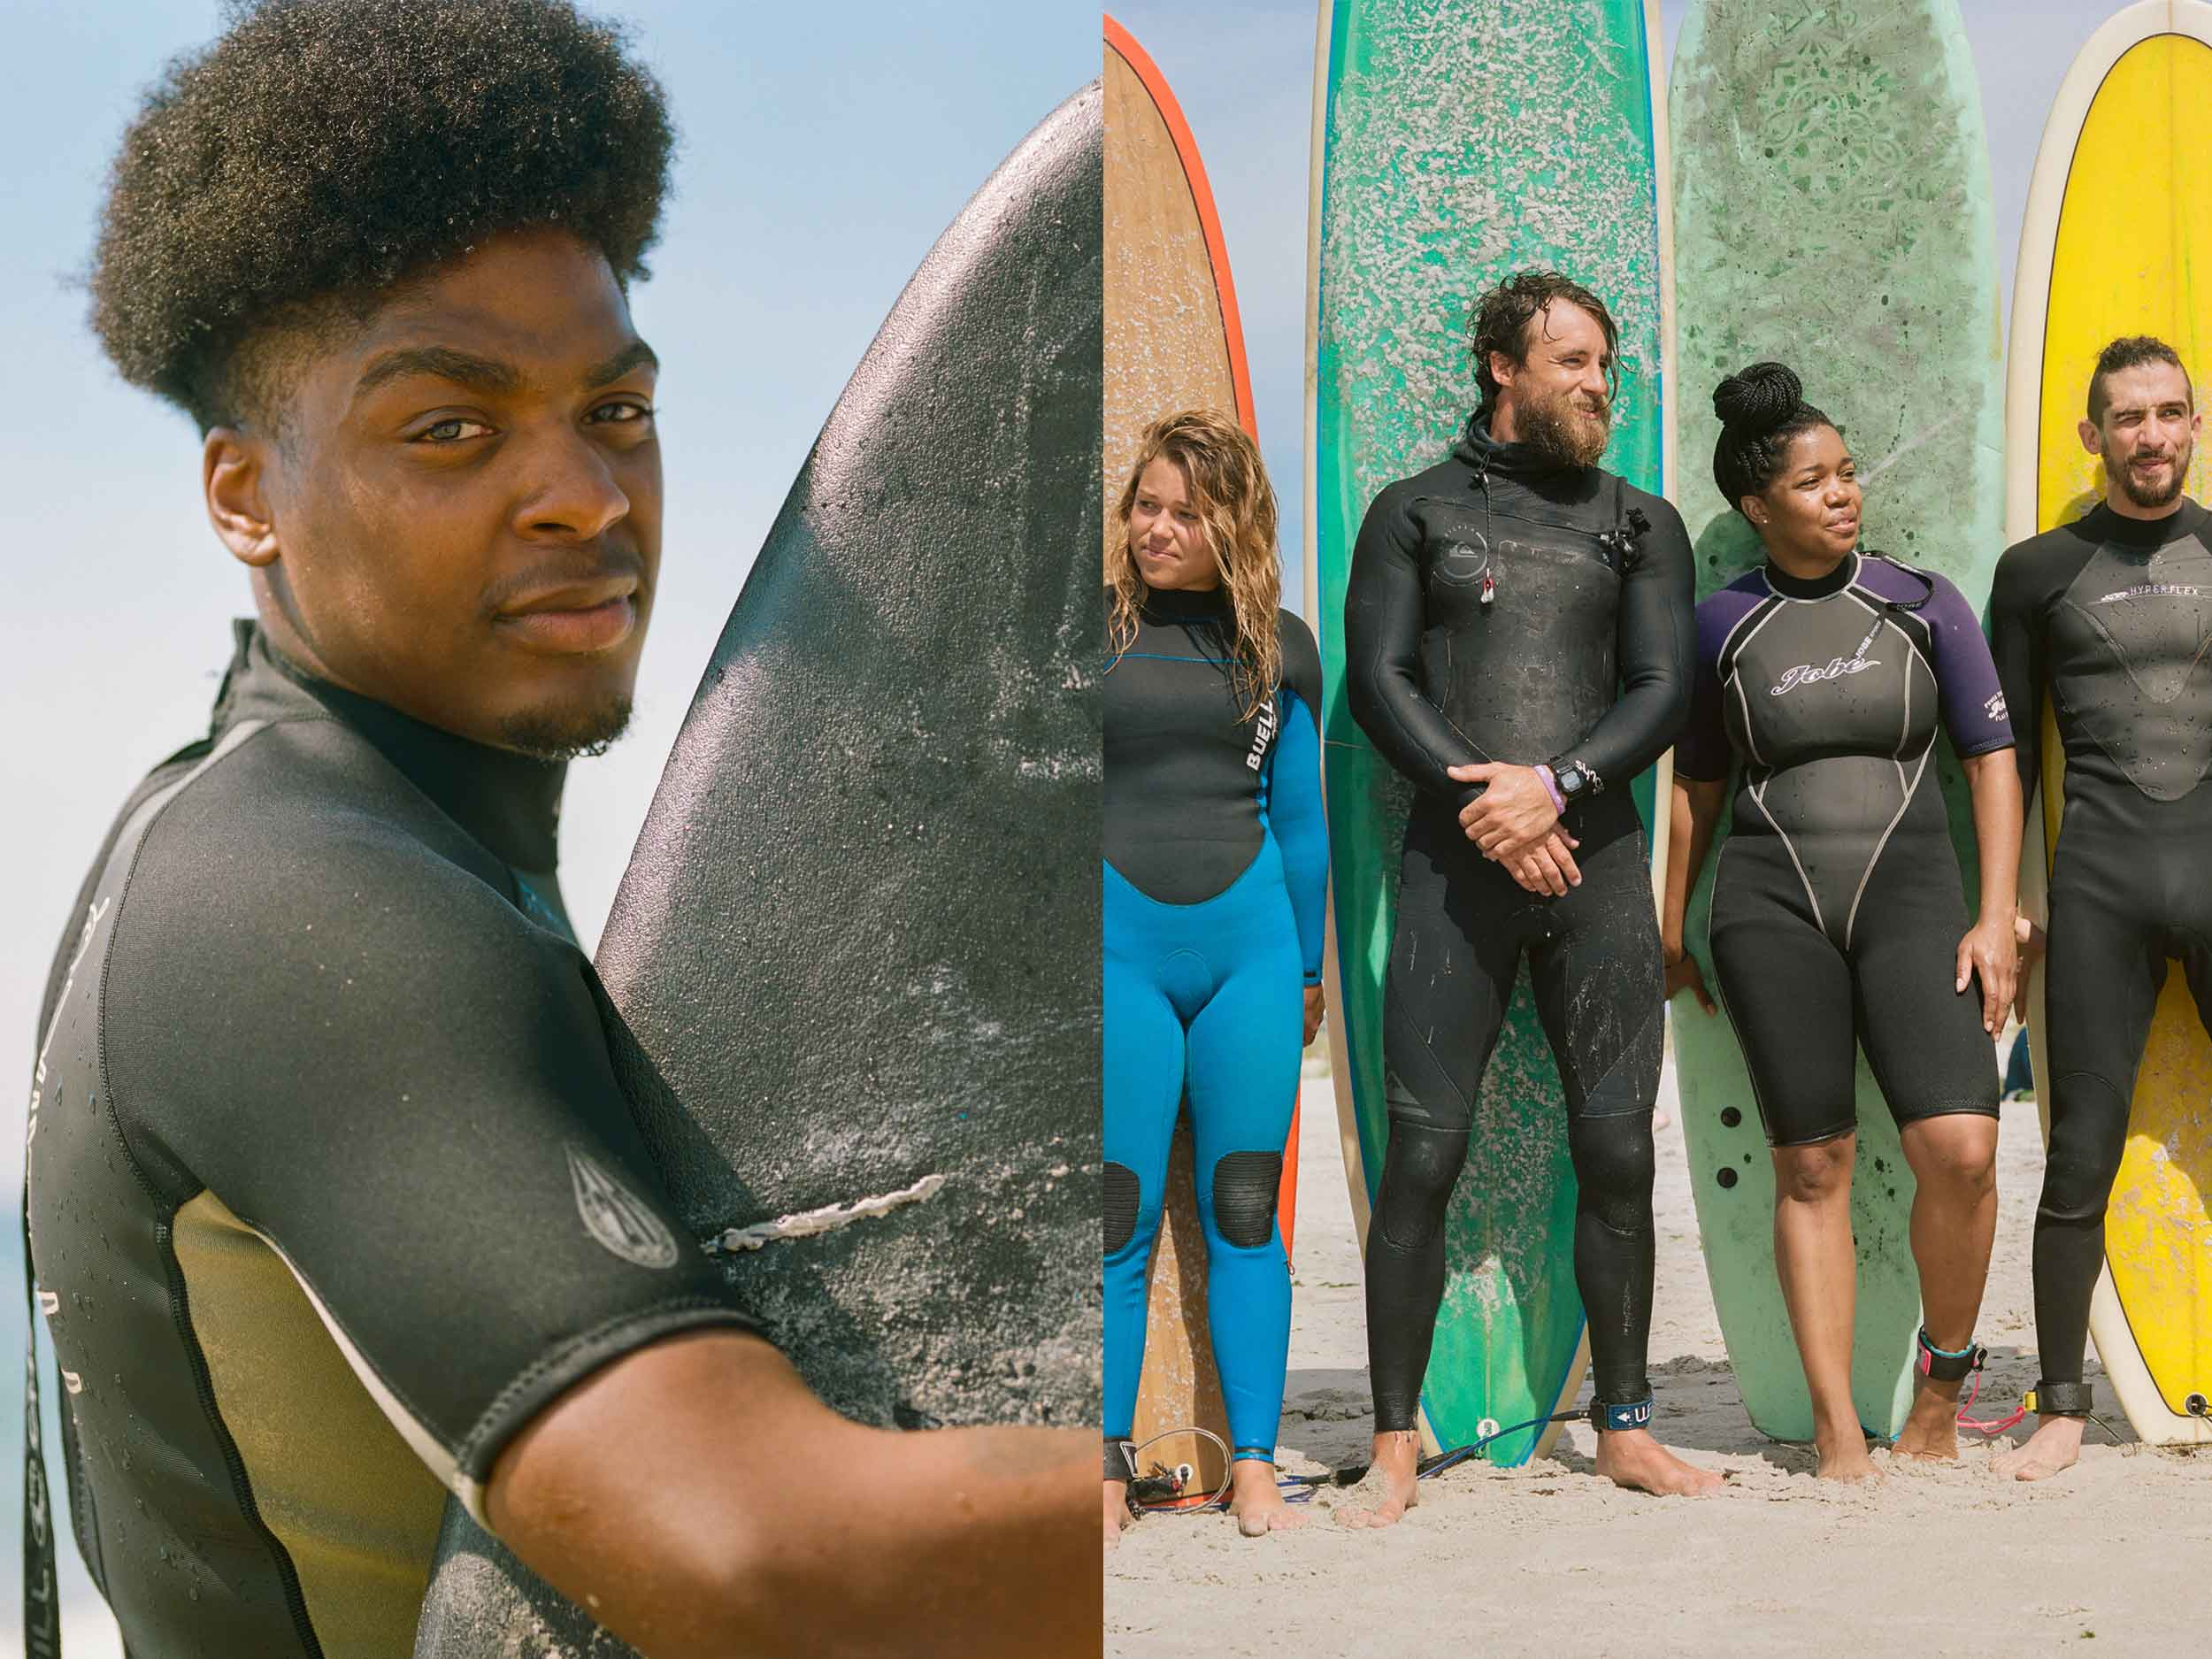 Led by the Black Surf Association, hundreds of surfers paid tribute to victims of police violence